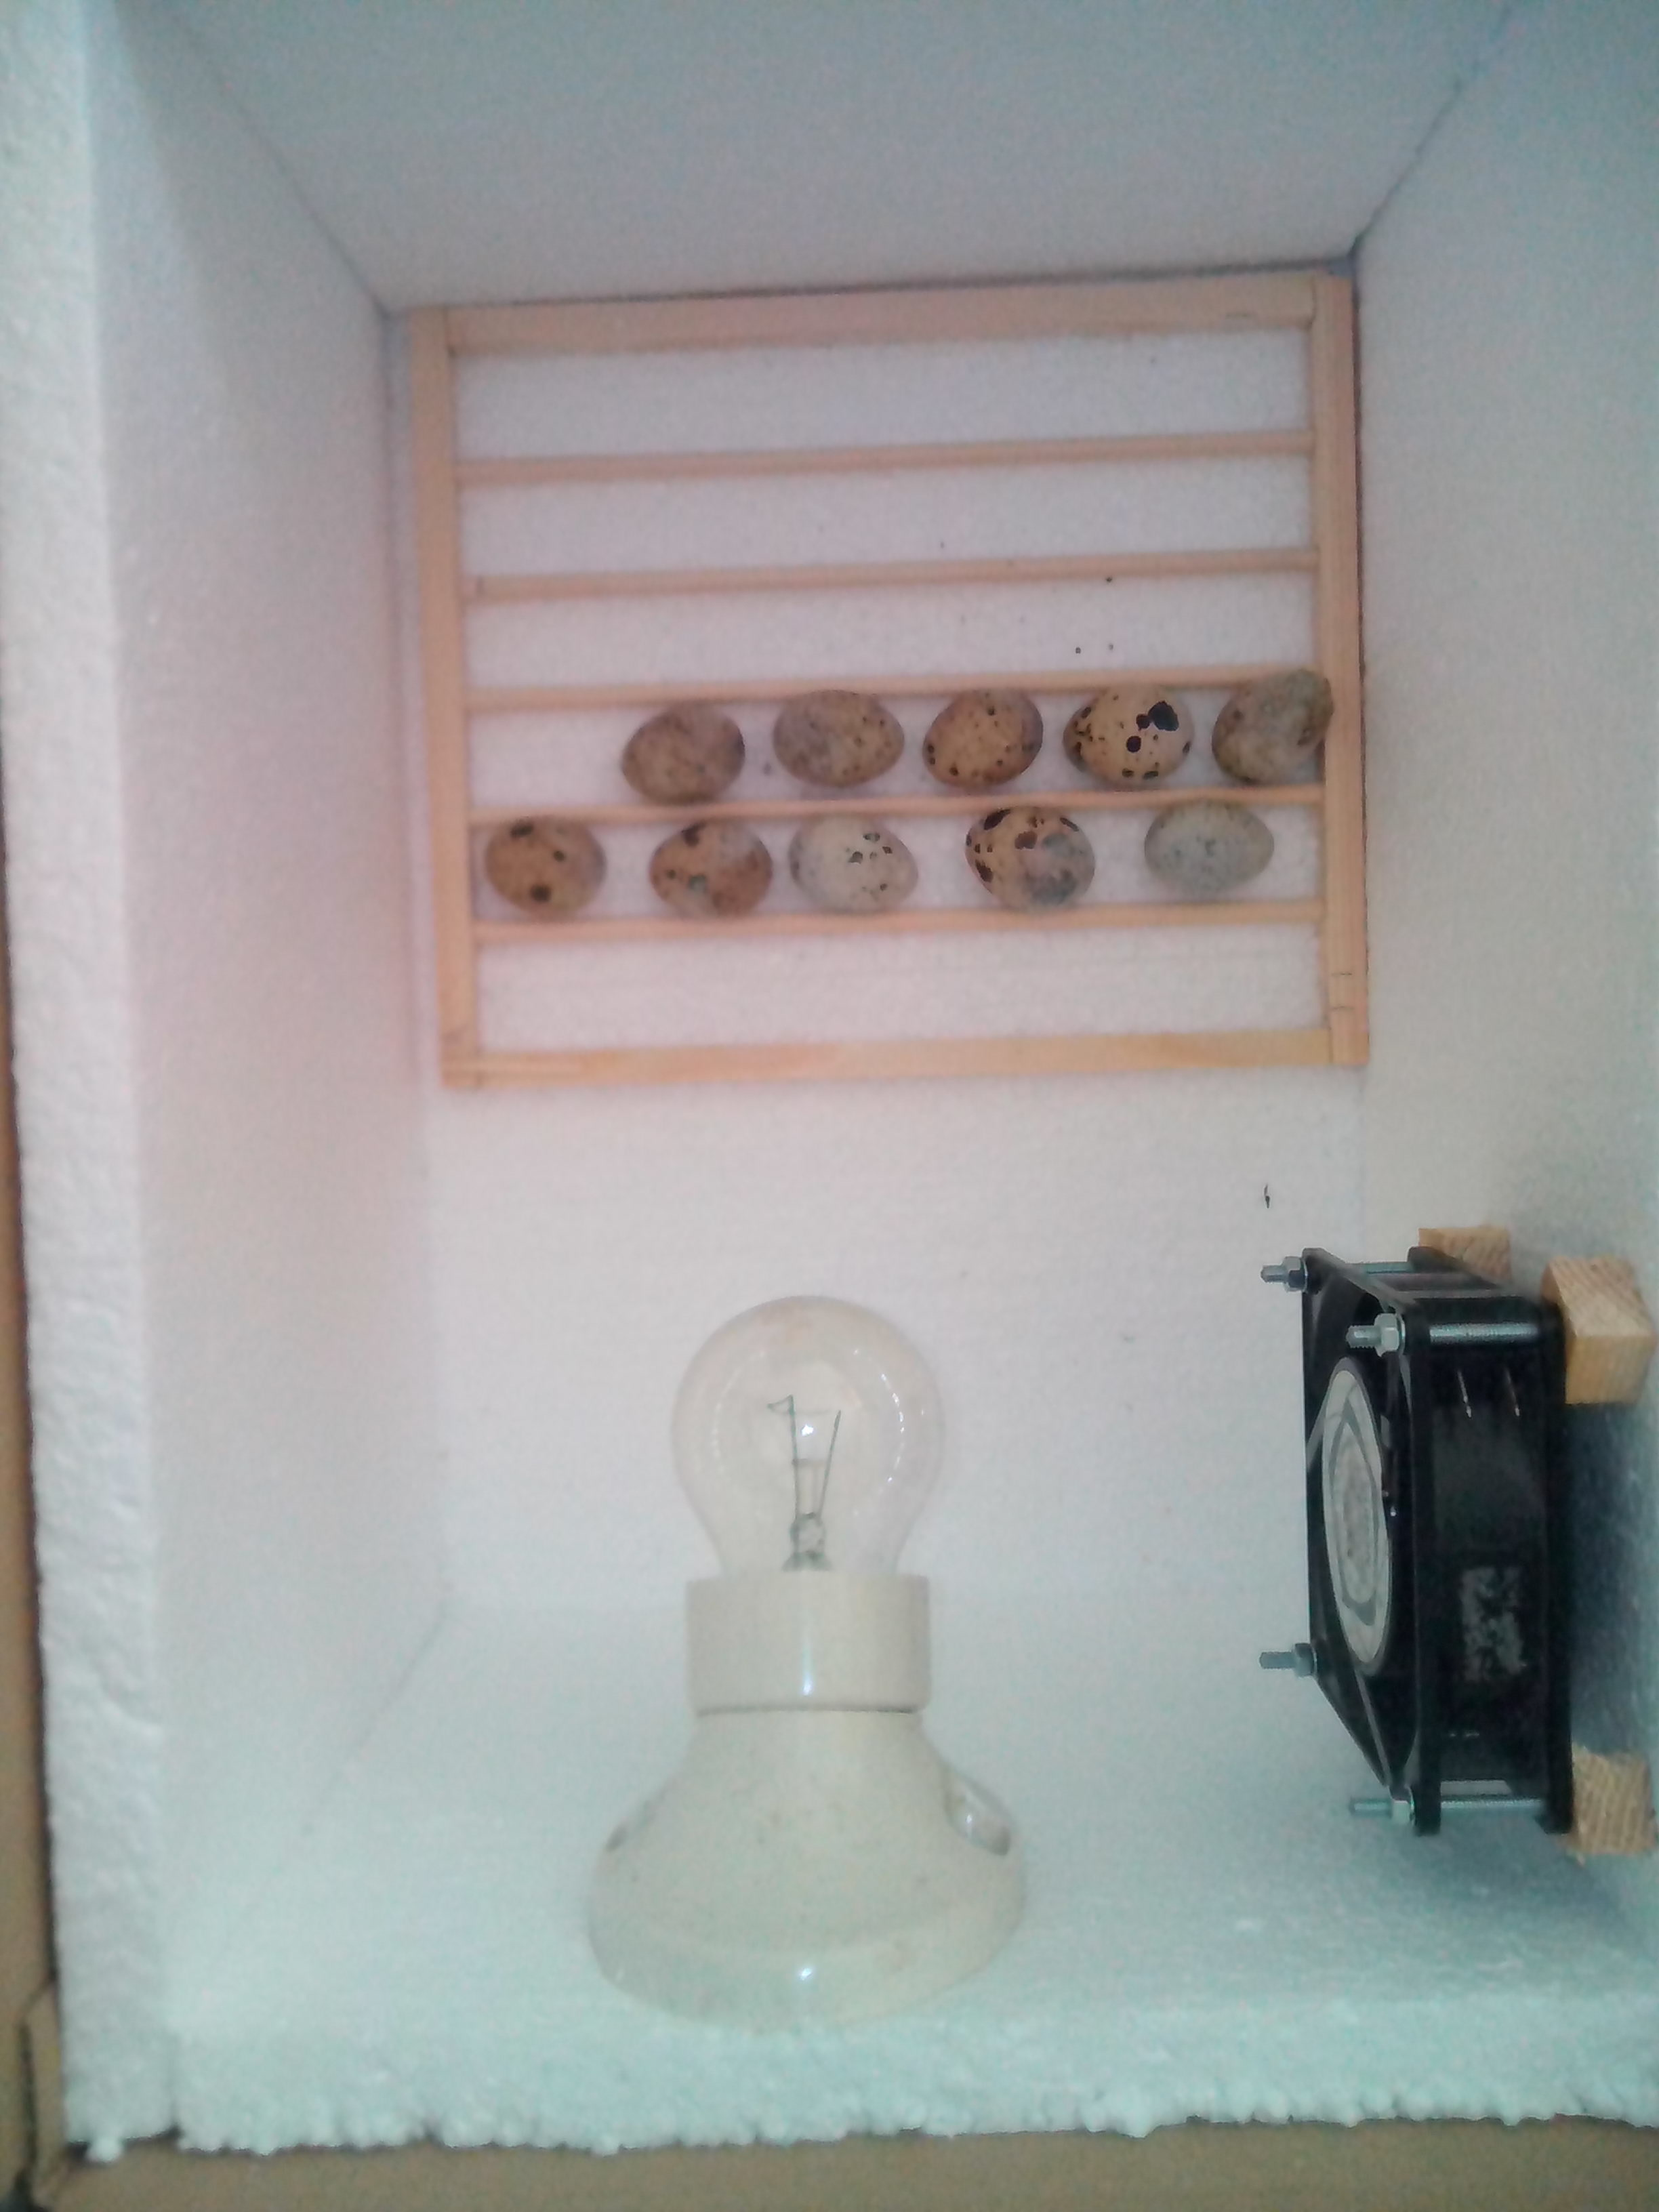 Picture of The Egg Rack and Turner